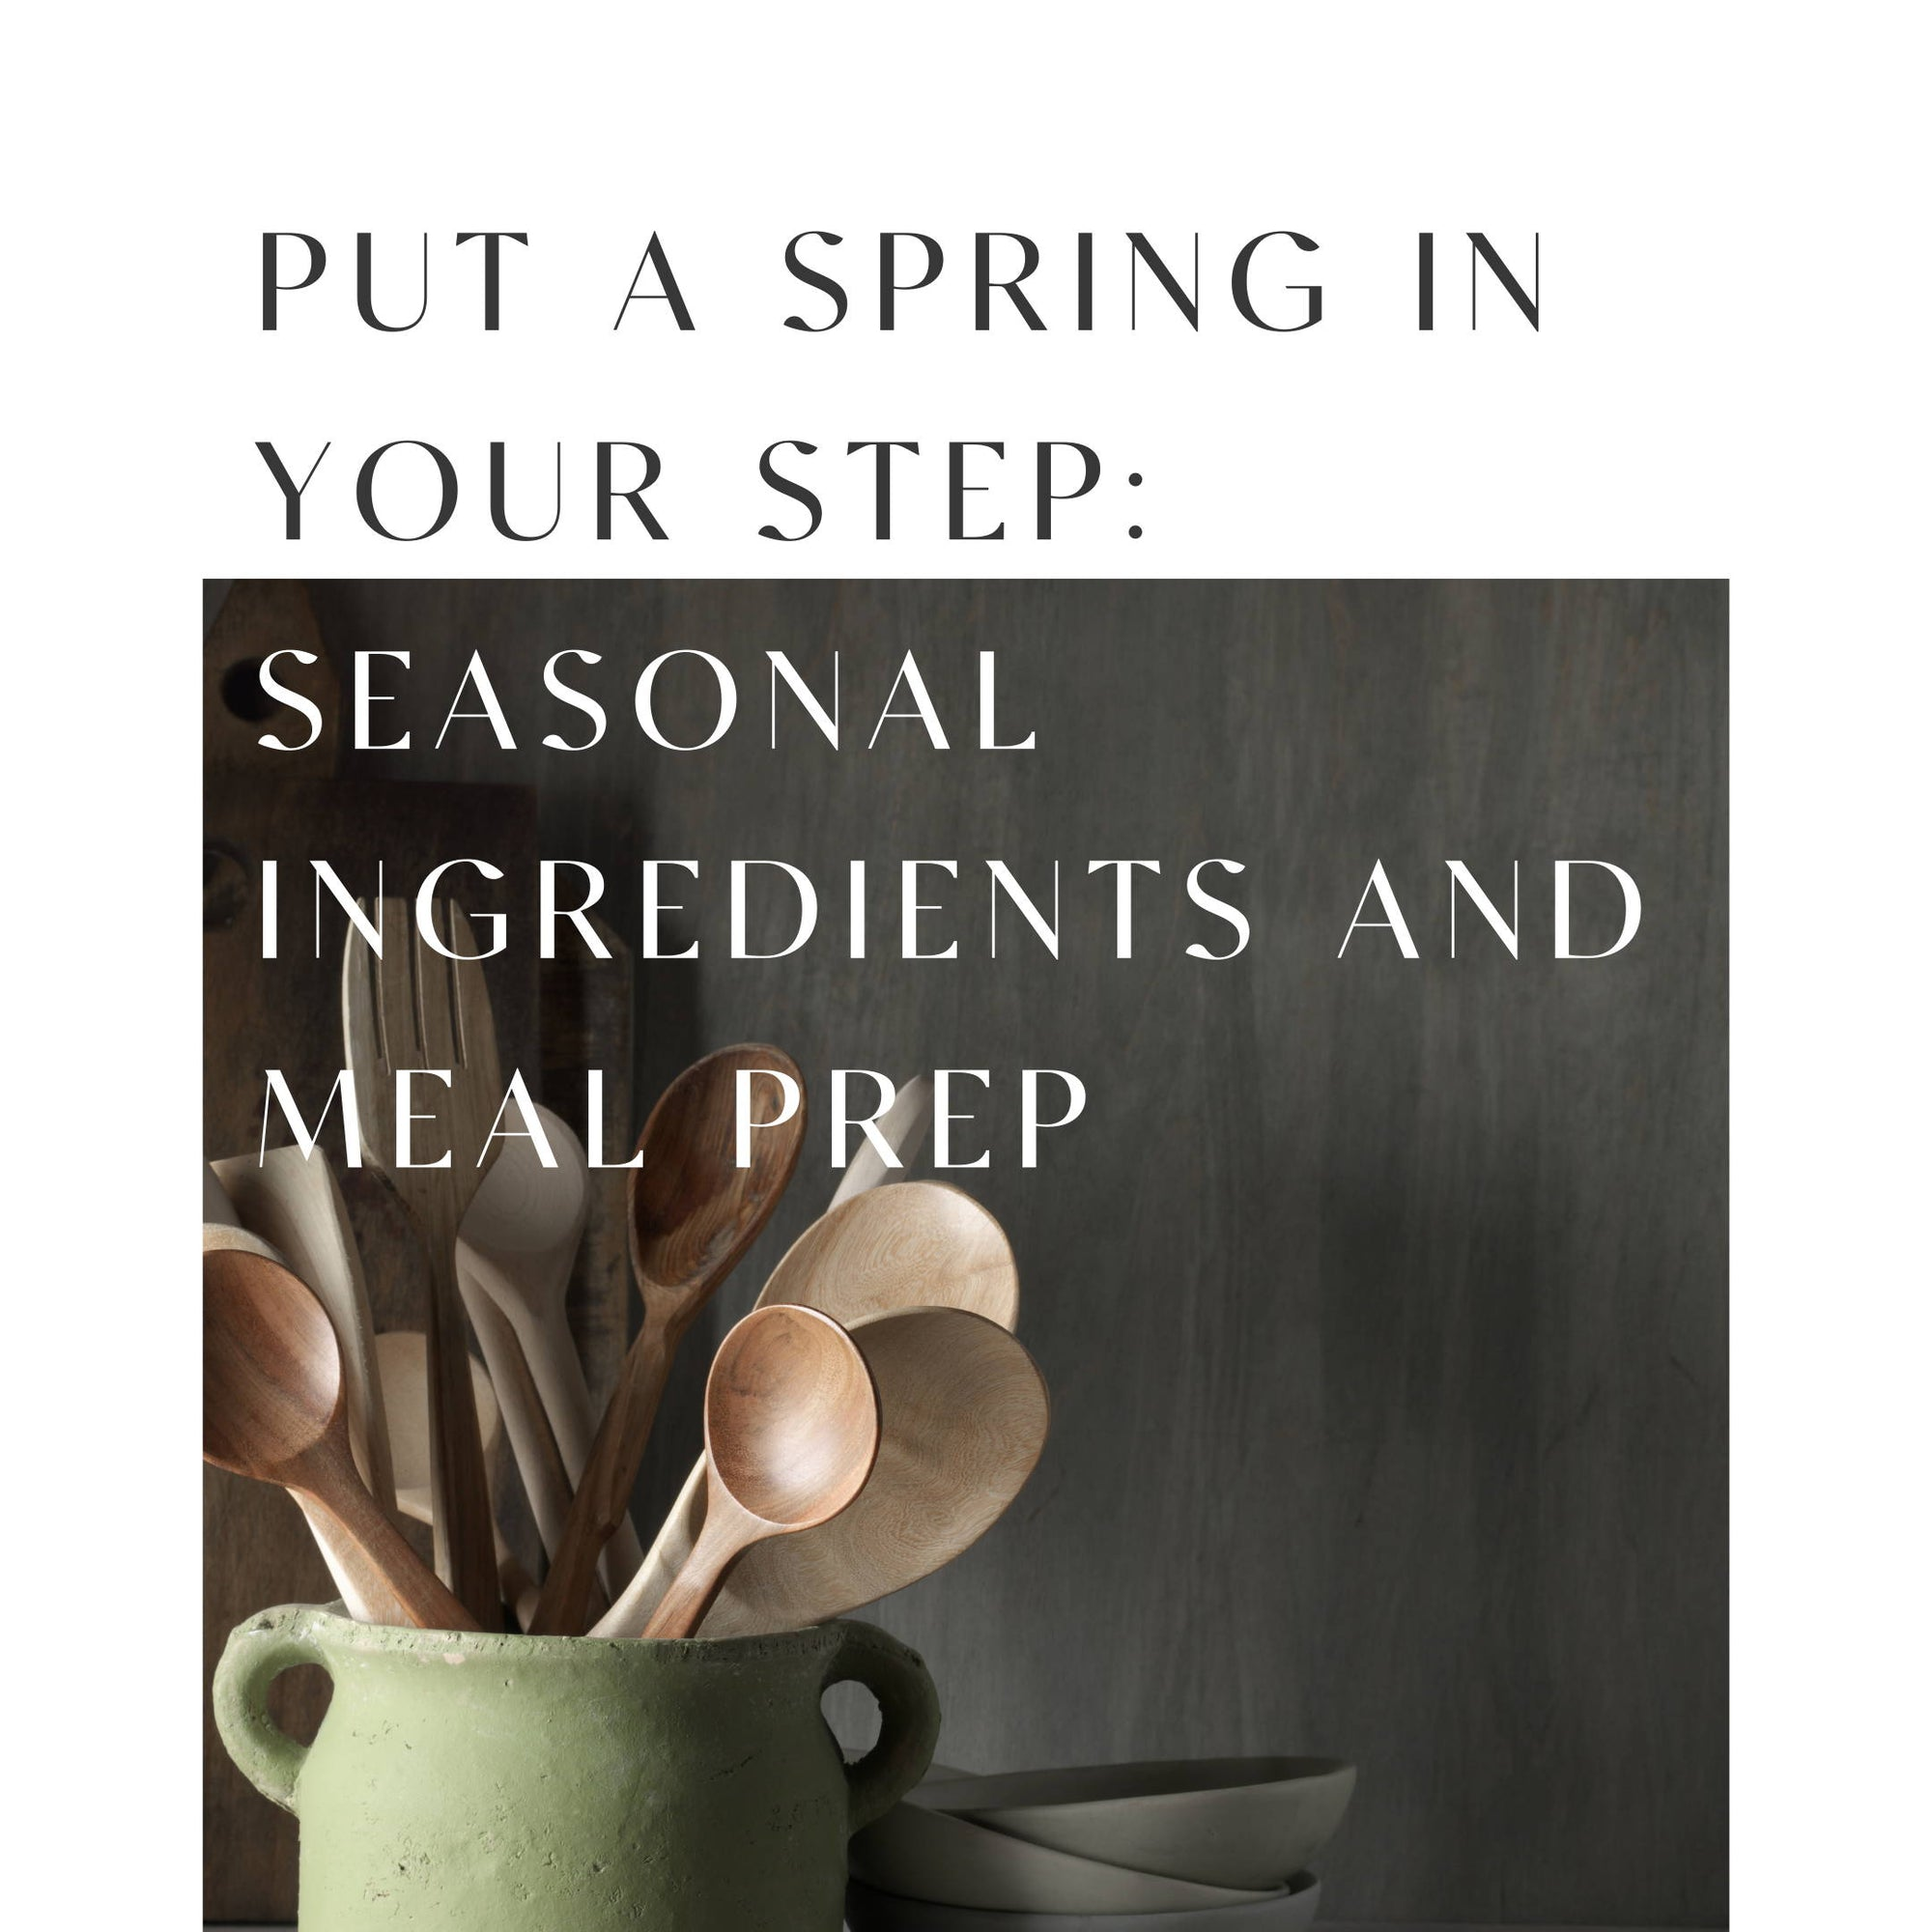 Put a Spring in Your Step, with Seasonal Ingredients and Meal Prep